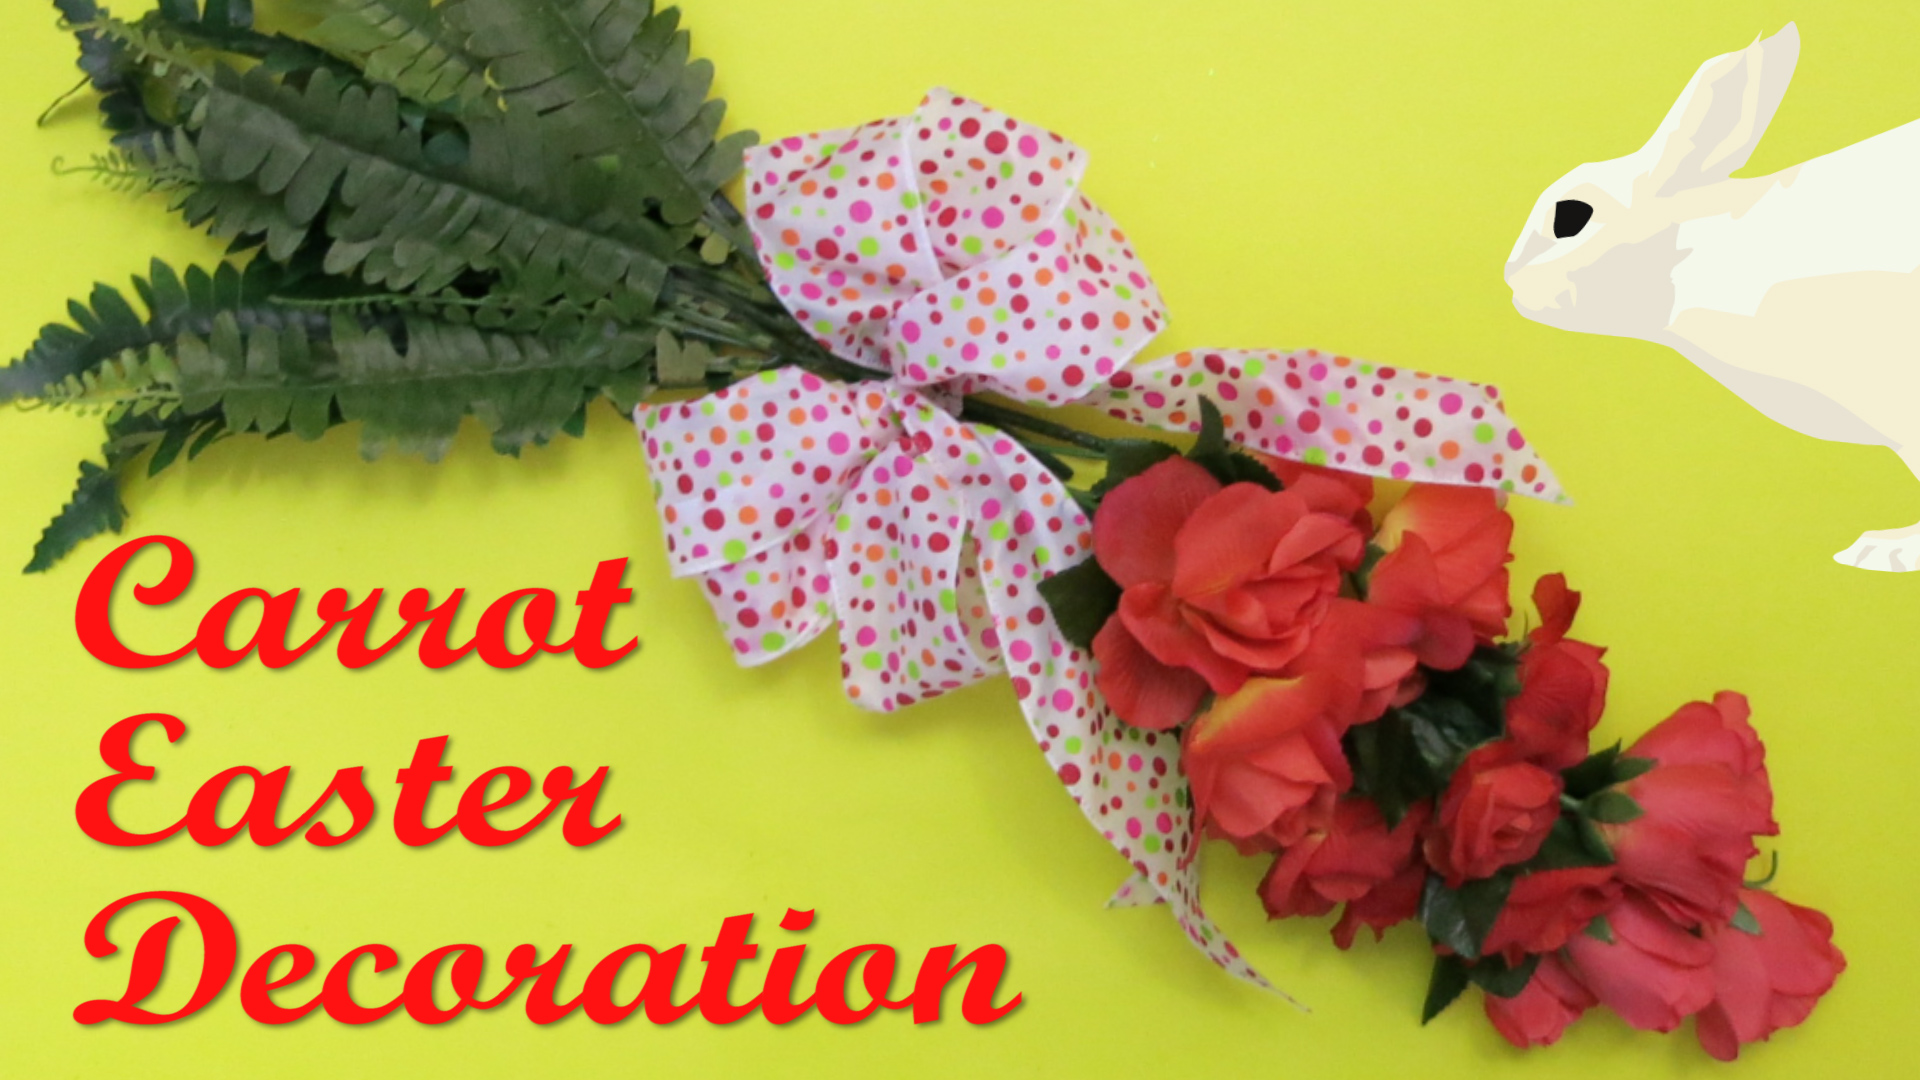 Carrot Easter Decoration made out of Roses and Ferns.jpg